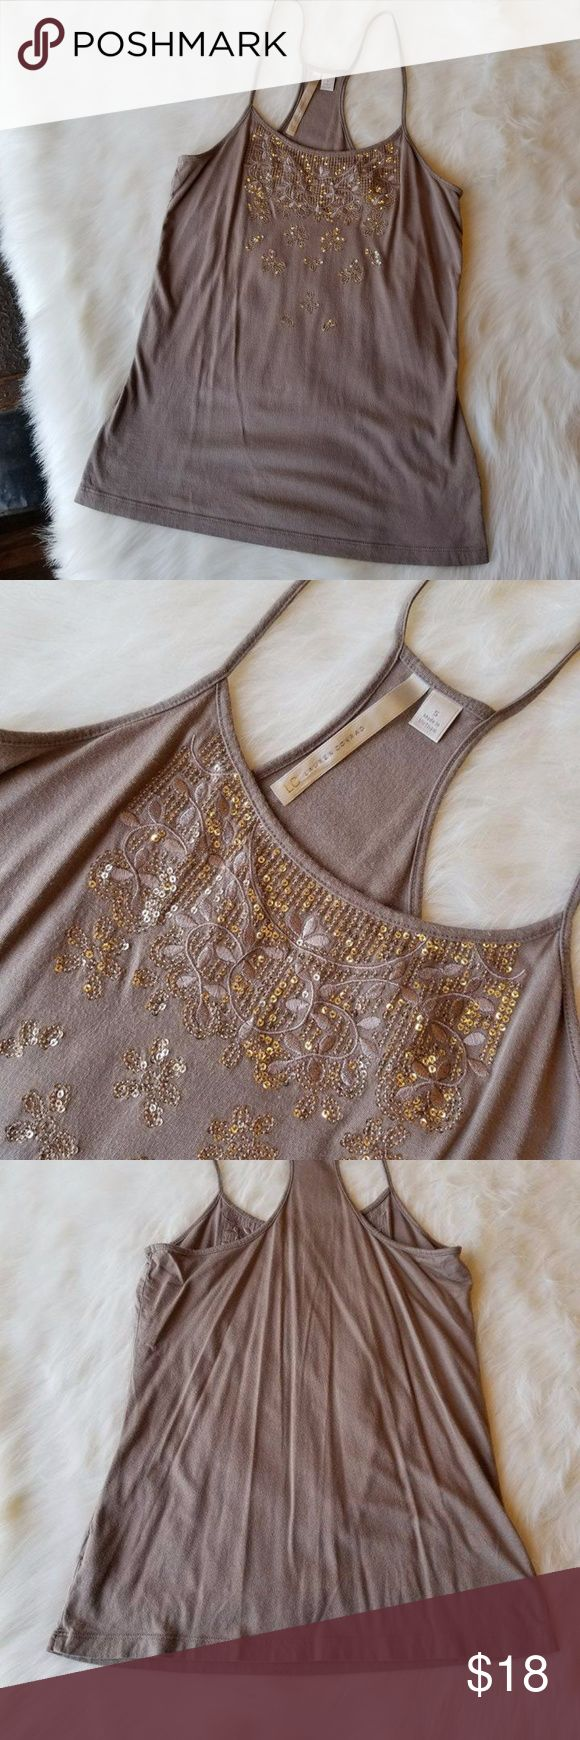 FREE SHIPPING LC Lauren Conrad Sequin Tank Top 21)Lc Lauren Conrad dark tan tank top. It is a racer back tee with embellished floral and sequins around the neck line Conditon: EUC  Size: SM   Make a reasonable offer or add to a bundle for a private offer!  I do not model, mannequin photo upon request. LC Lauren Conrad Tops Tank Tops